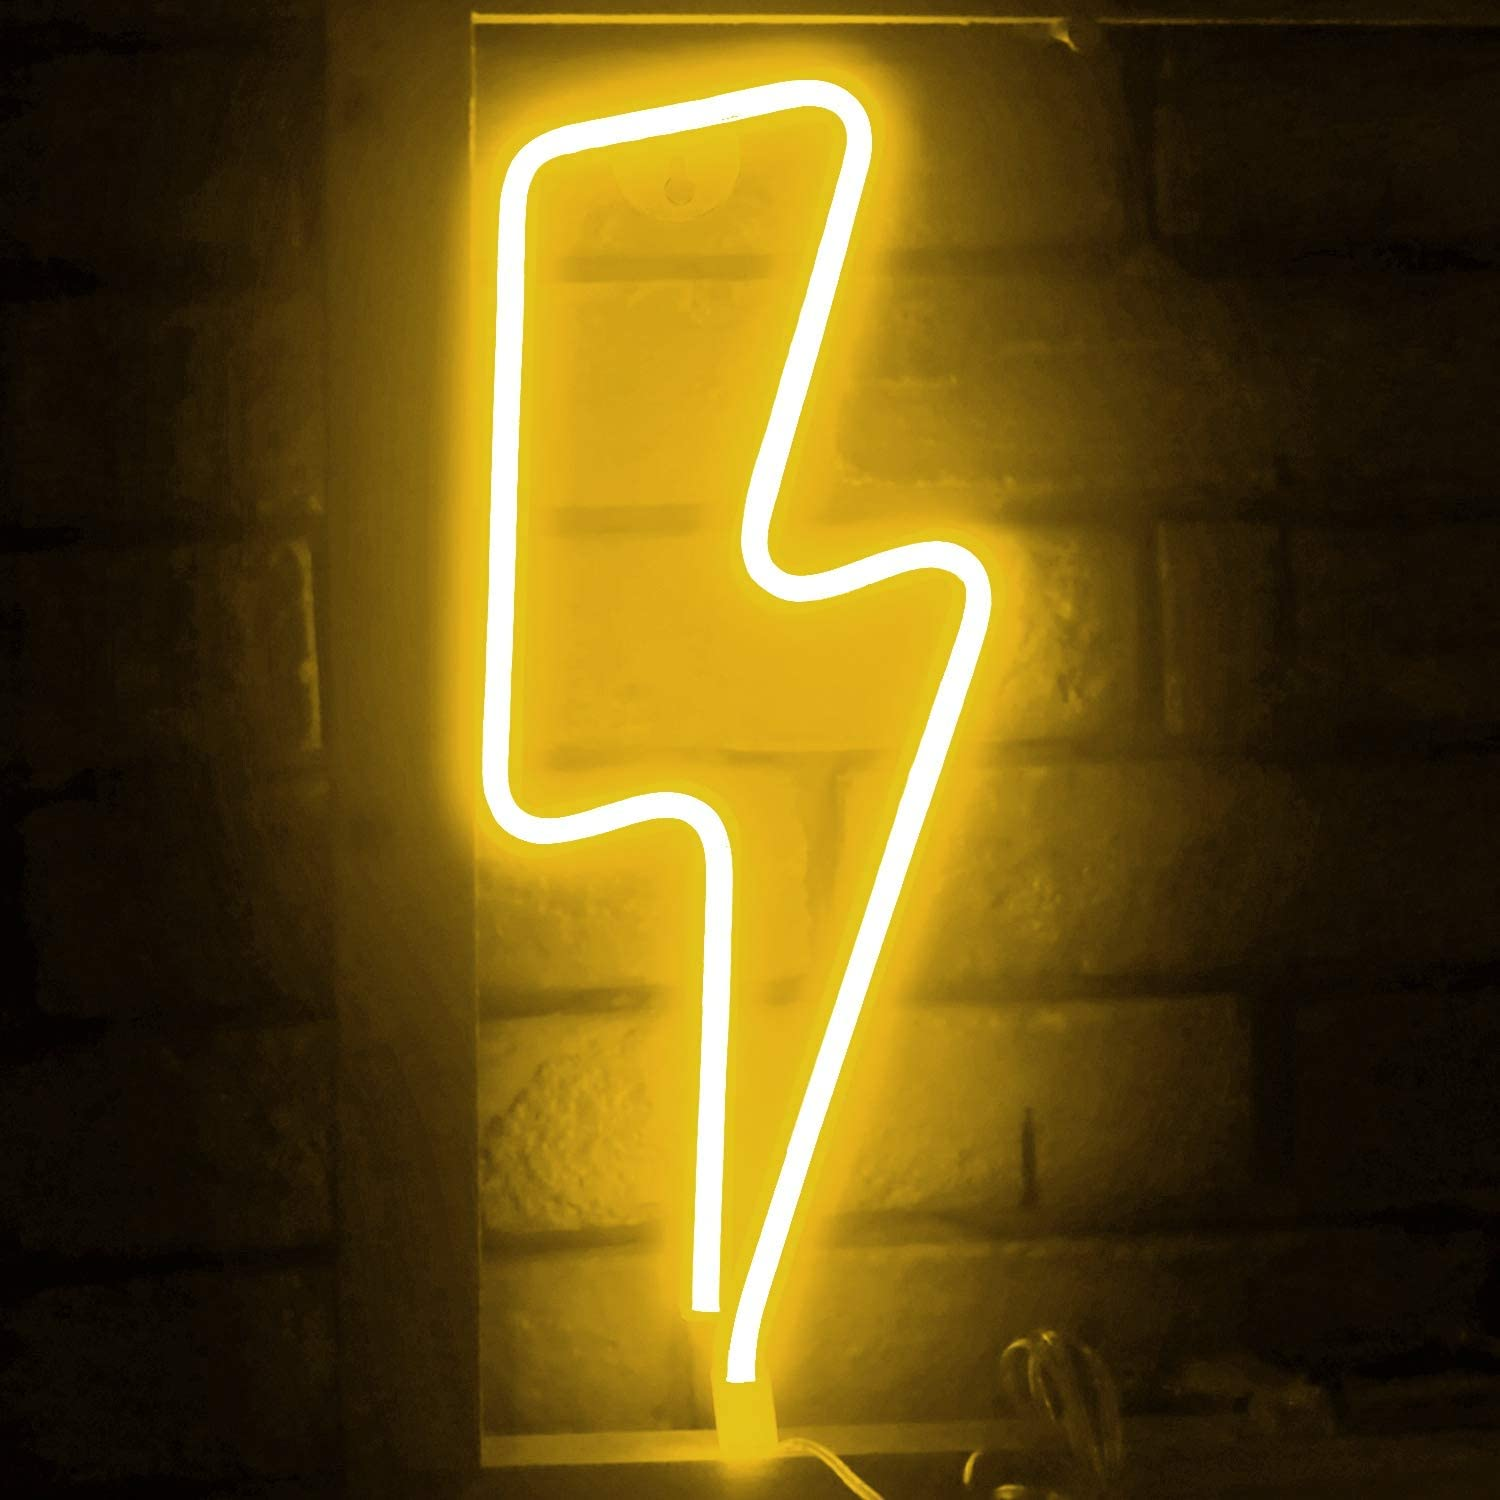 Funpeny LED Neon Decorative Light, Neon Sign Shaped Decor Light, Lightning Shape Indoor Decor for Halloween Decoration Living Room, Birthday Party, Wedding Party (Warm White)